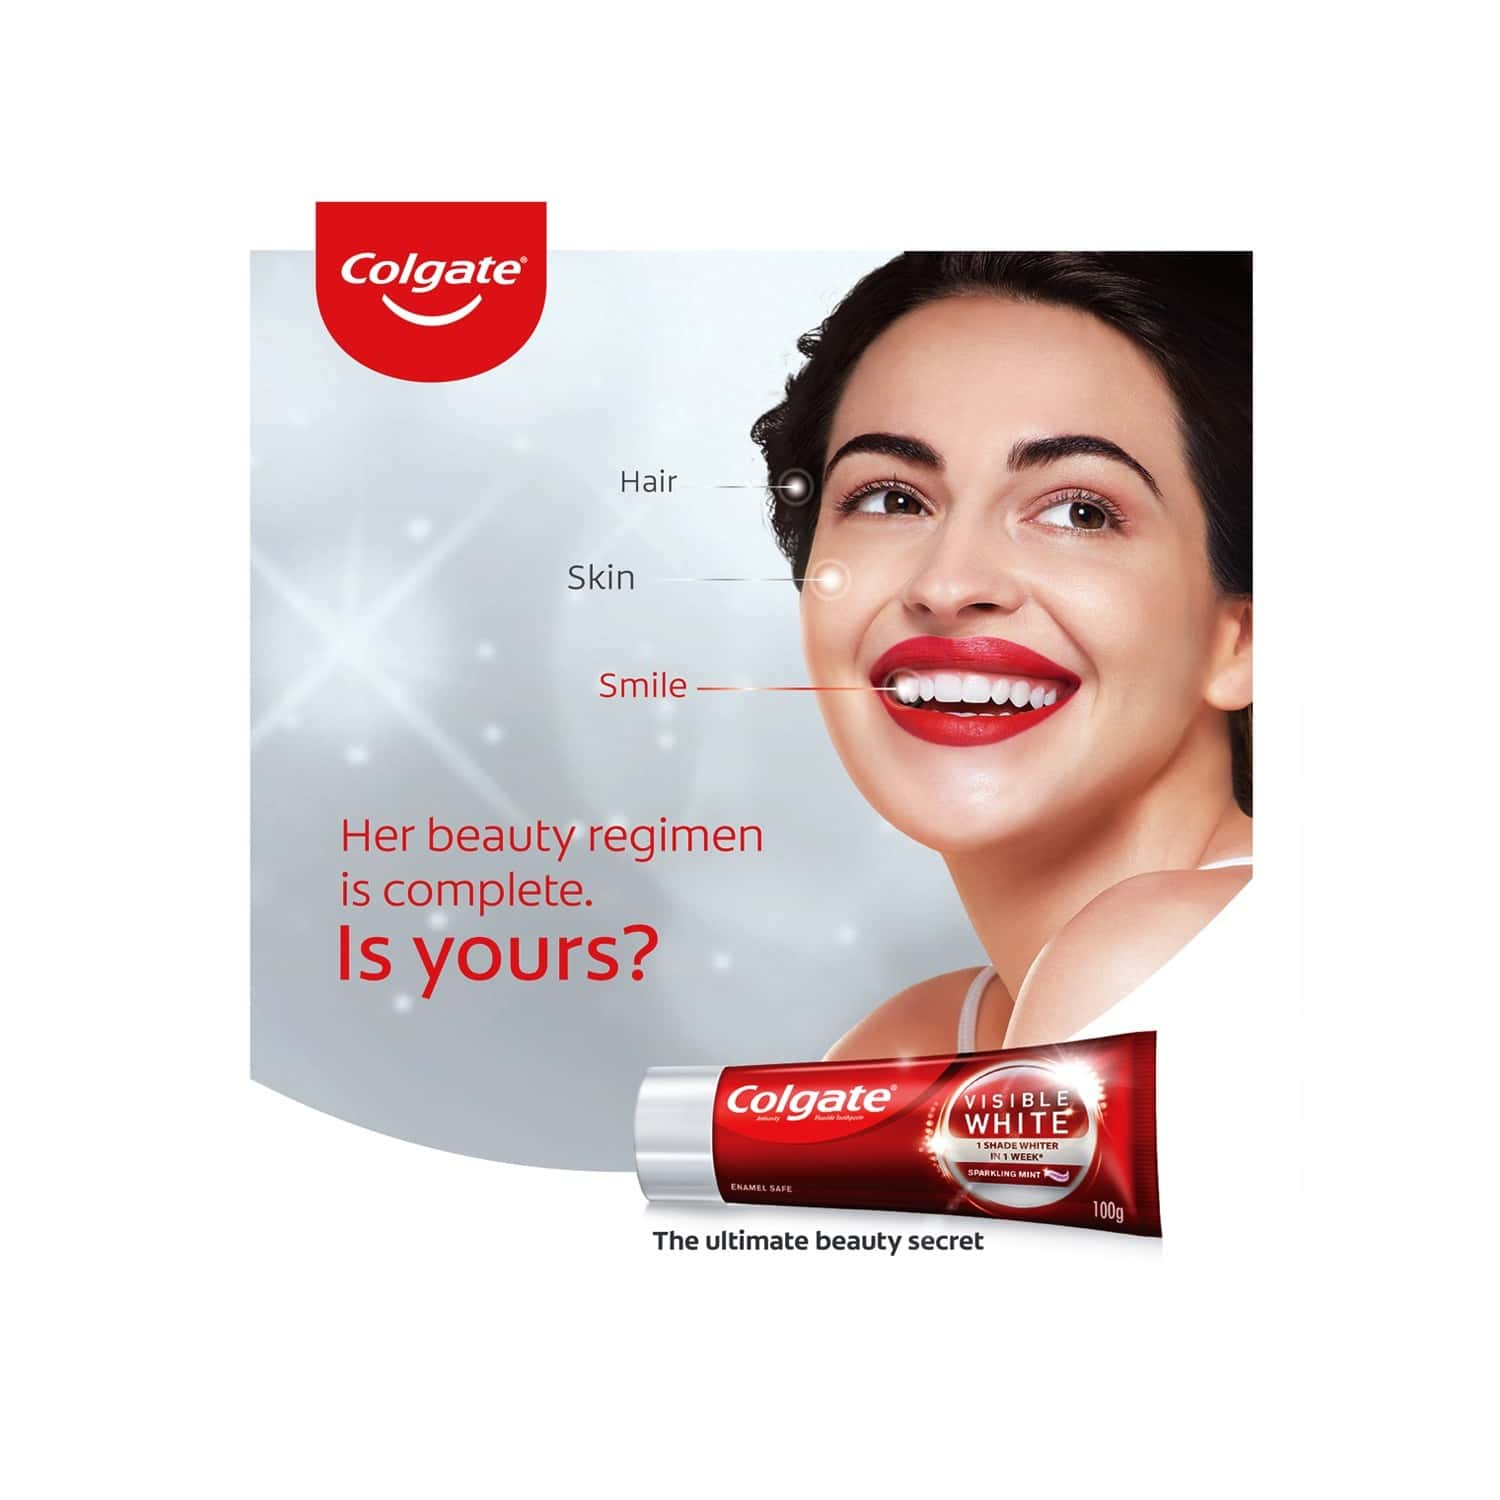 Colgate Visible White Teeth Whitening Toothpaste, Protects Enamel, Removes Stains, With Whitening Accelerators, 100g X 4 - 400g